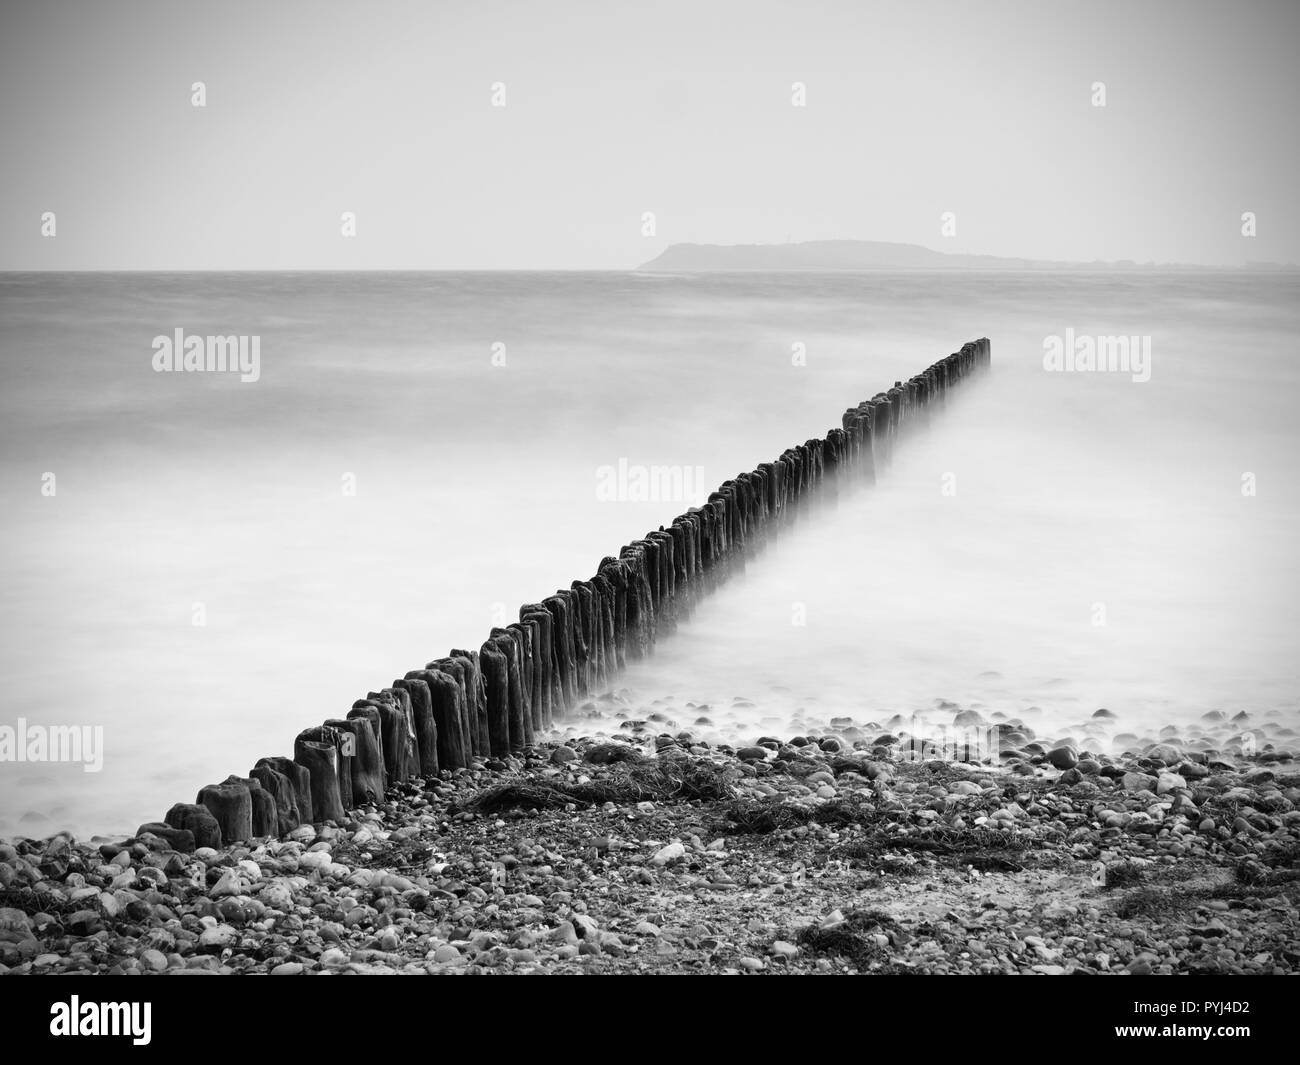 Baltic Sea shore in strong wind. Breakwater built of wooden logs by the Baltic Sea. Winter season - Stock Image